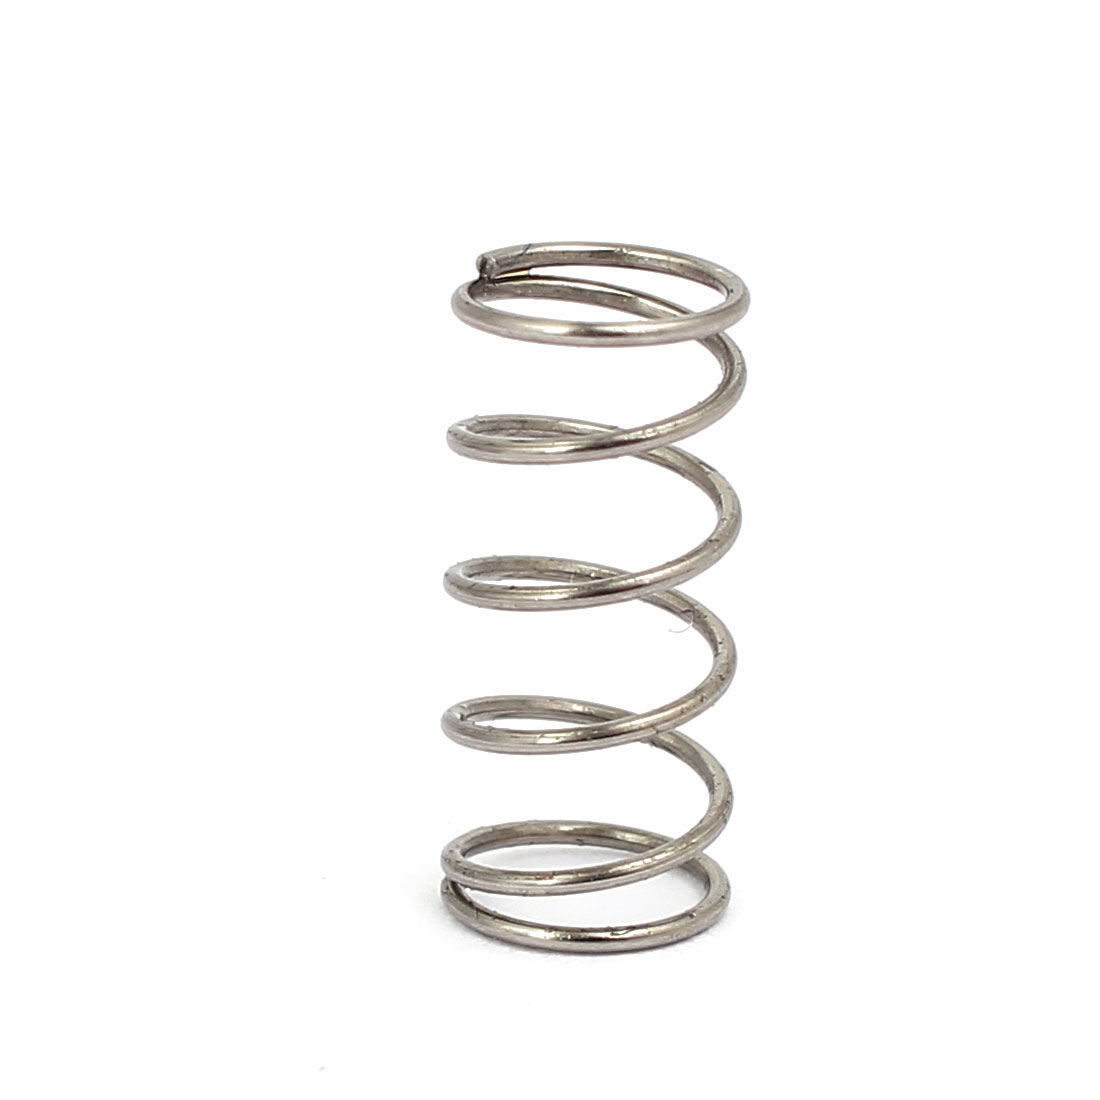 0.6mmx7mmx15mm 304 Stainless Steel Compression Springs Silver Tone 10pcs - image 2 of 3